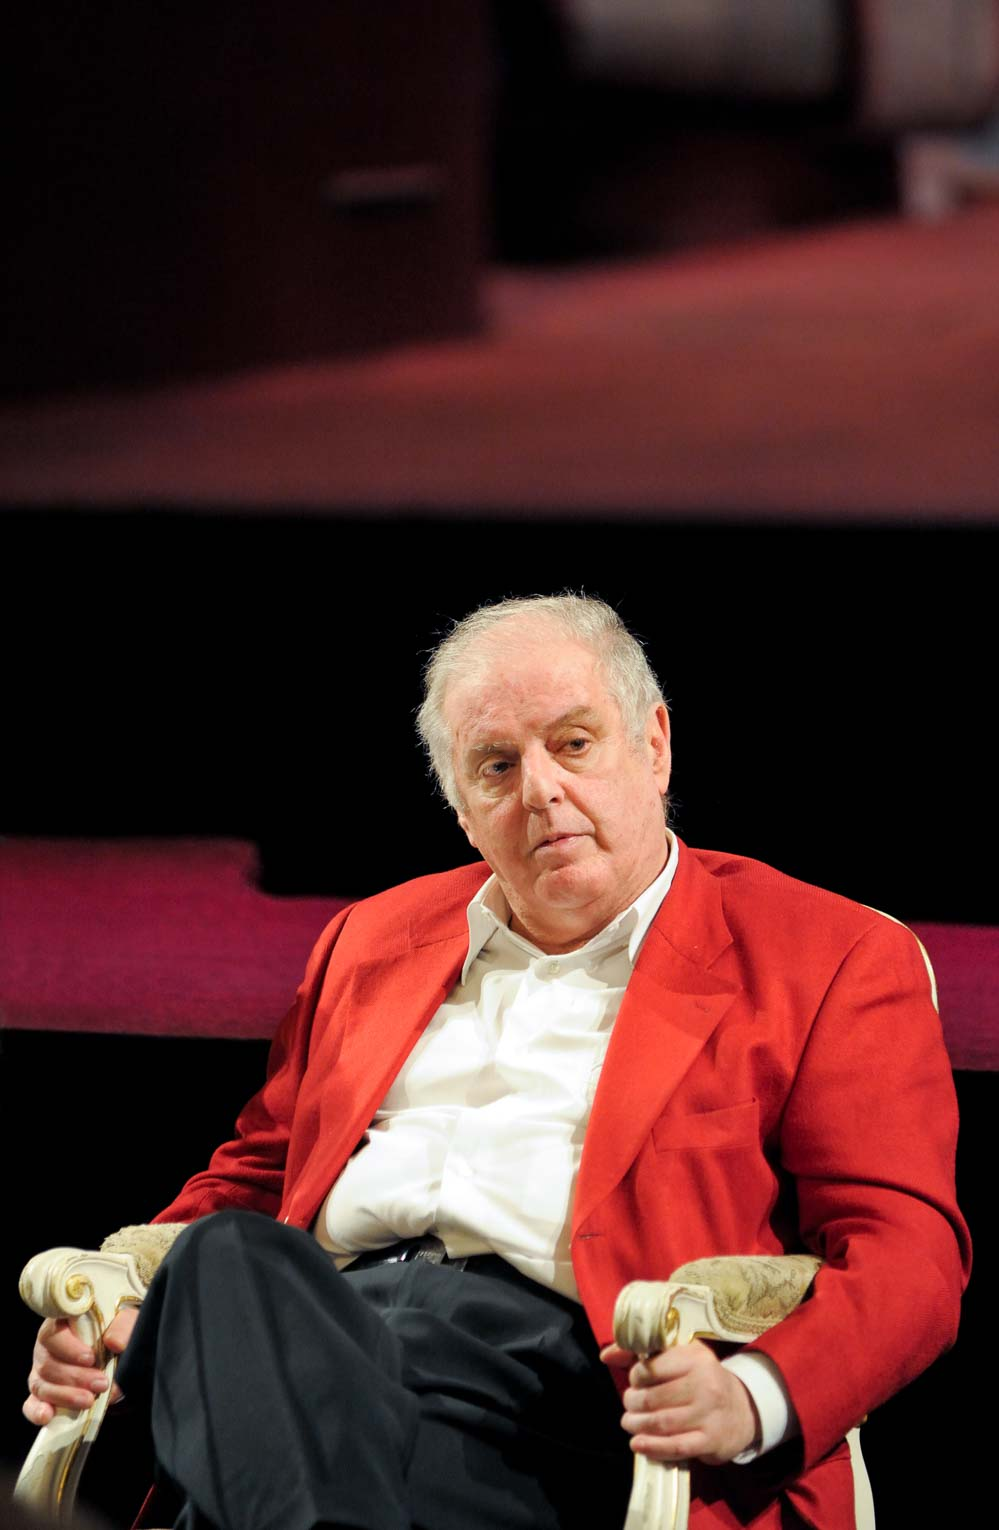 Daniel Barenboim, an Argentinian-Israeli pianist and conductor (Berlin, 2009). Photo © Aris Fotografie